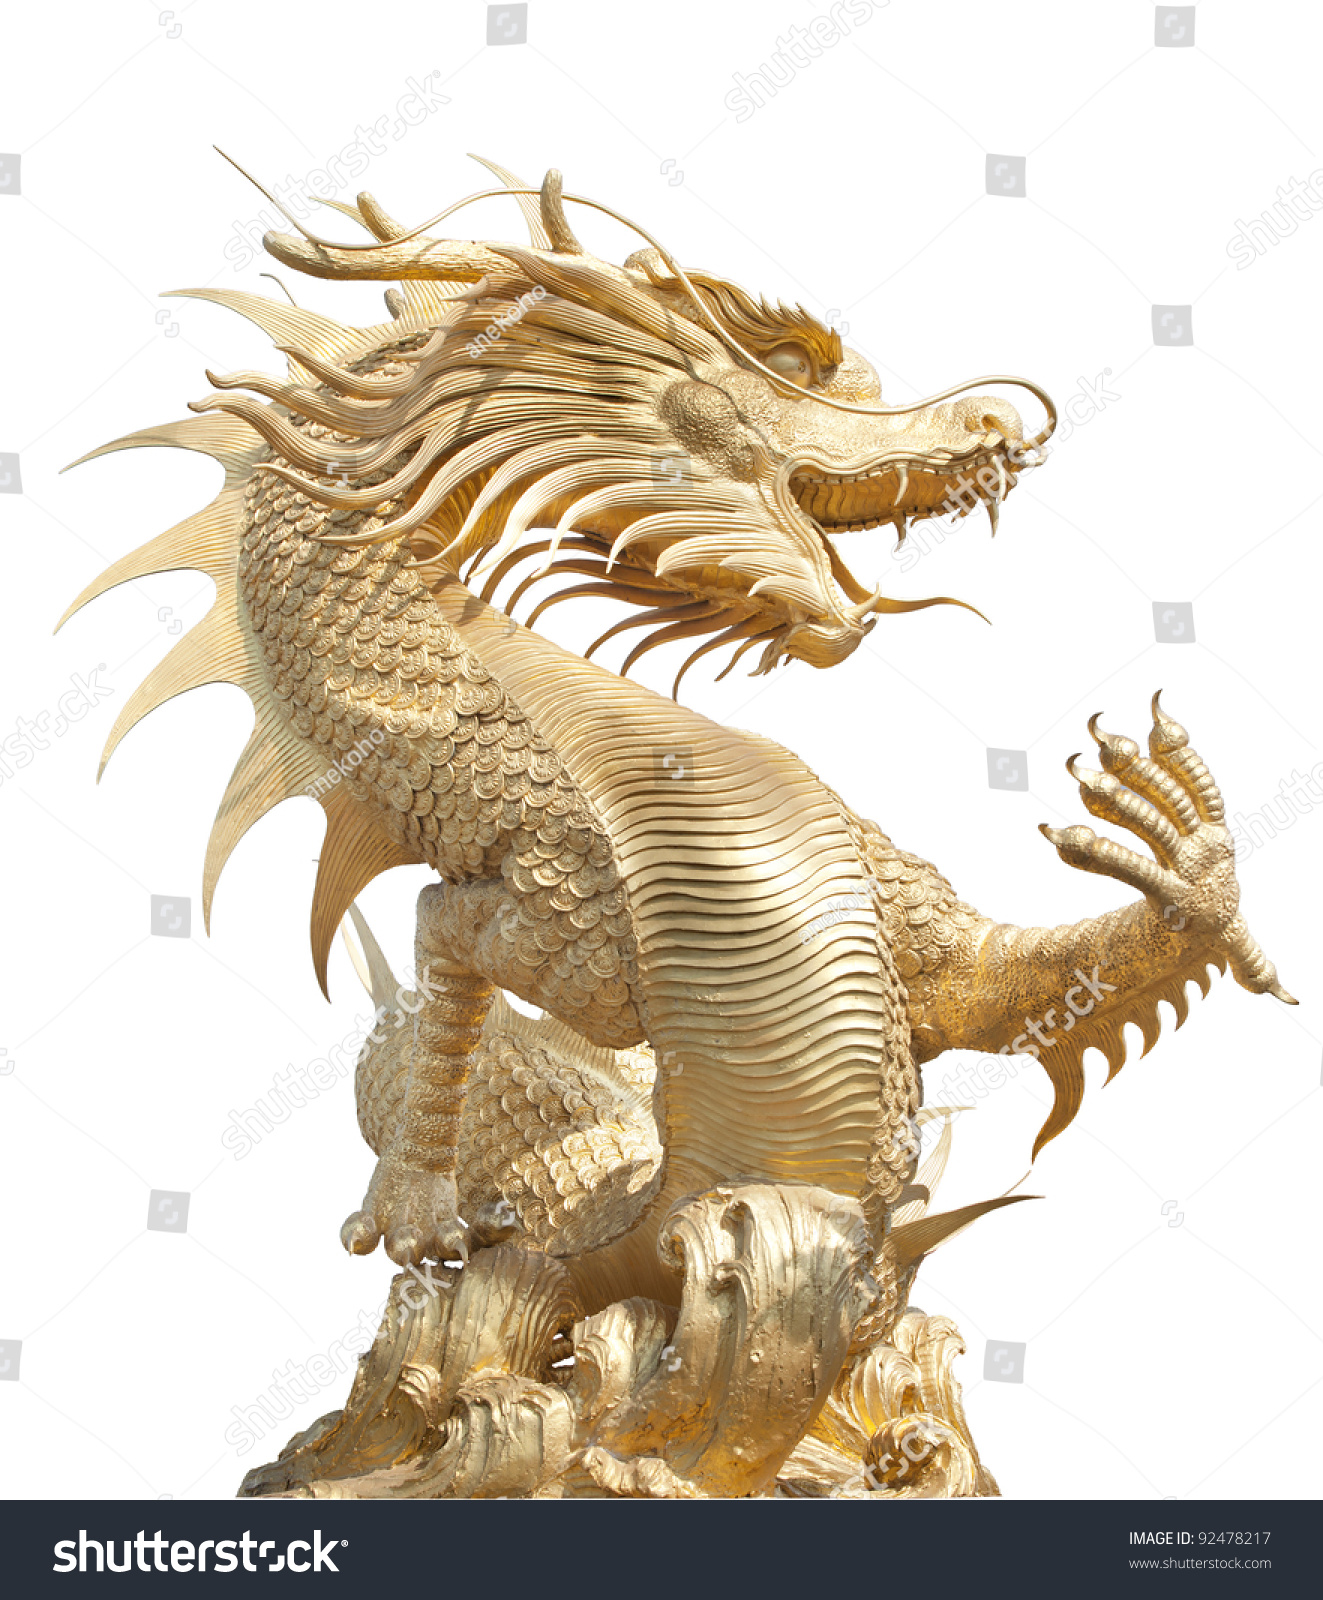 Giant Dragon Statue Giant Golden Chinese Dragon For Year 1212 Stock Photo